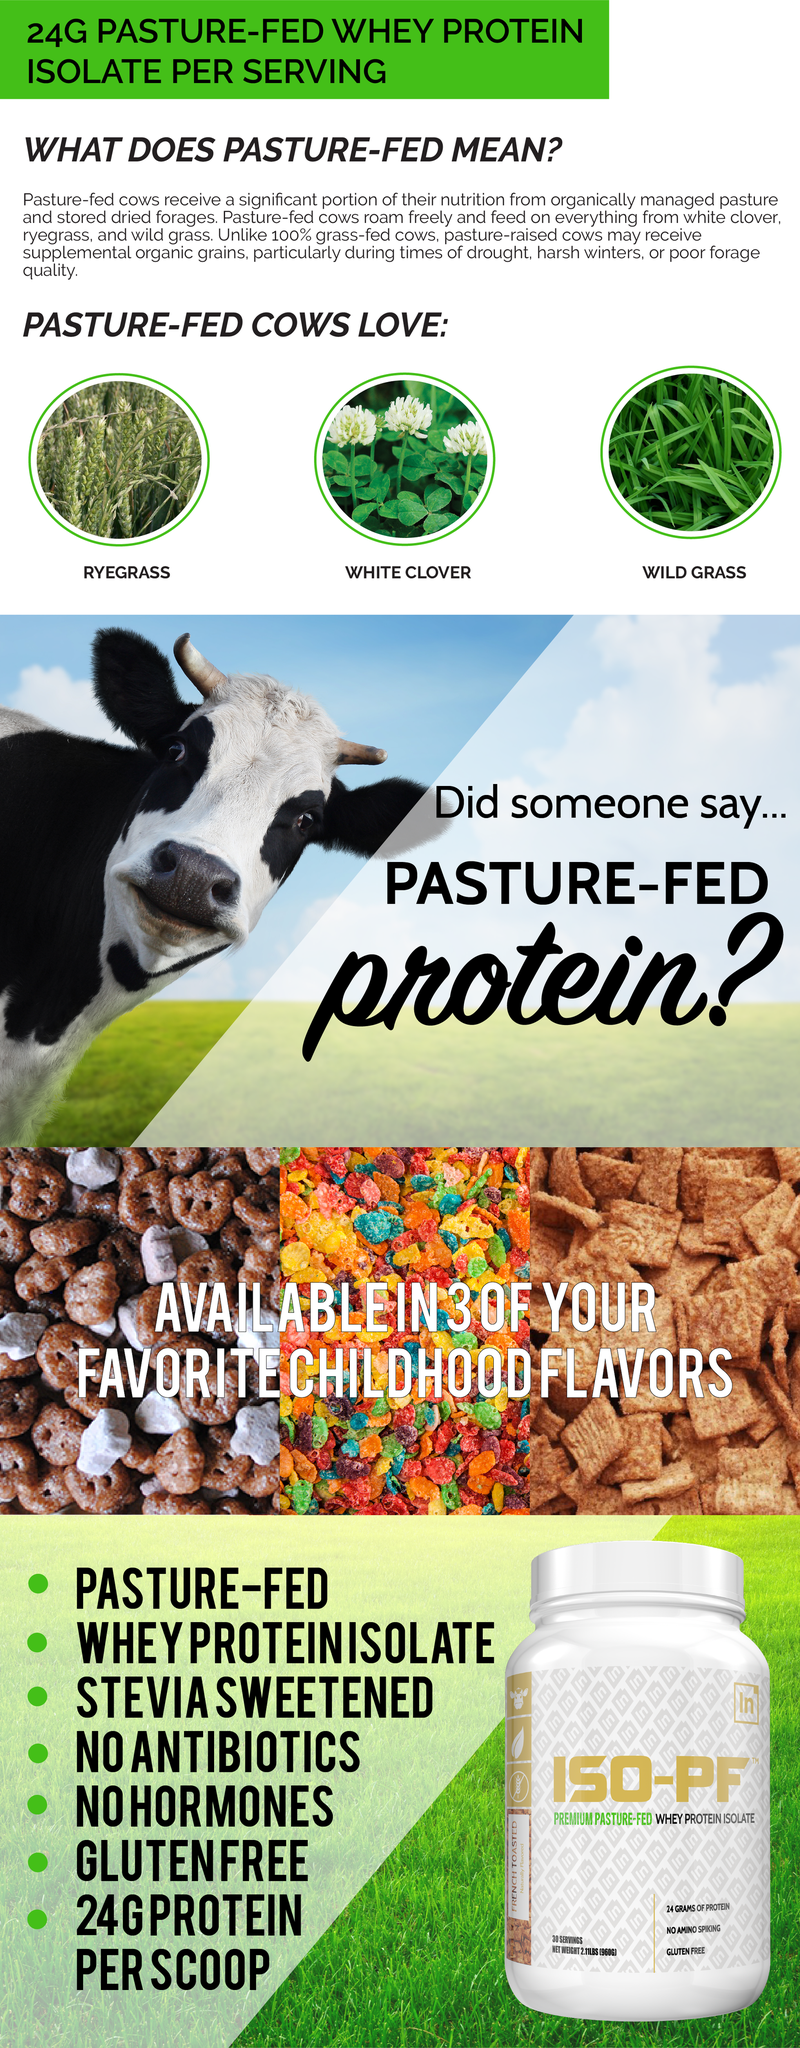 Pasture-Fed Whey Protein Isolate, Huntington Beach Best Prices